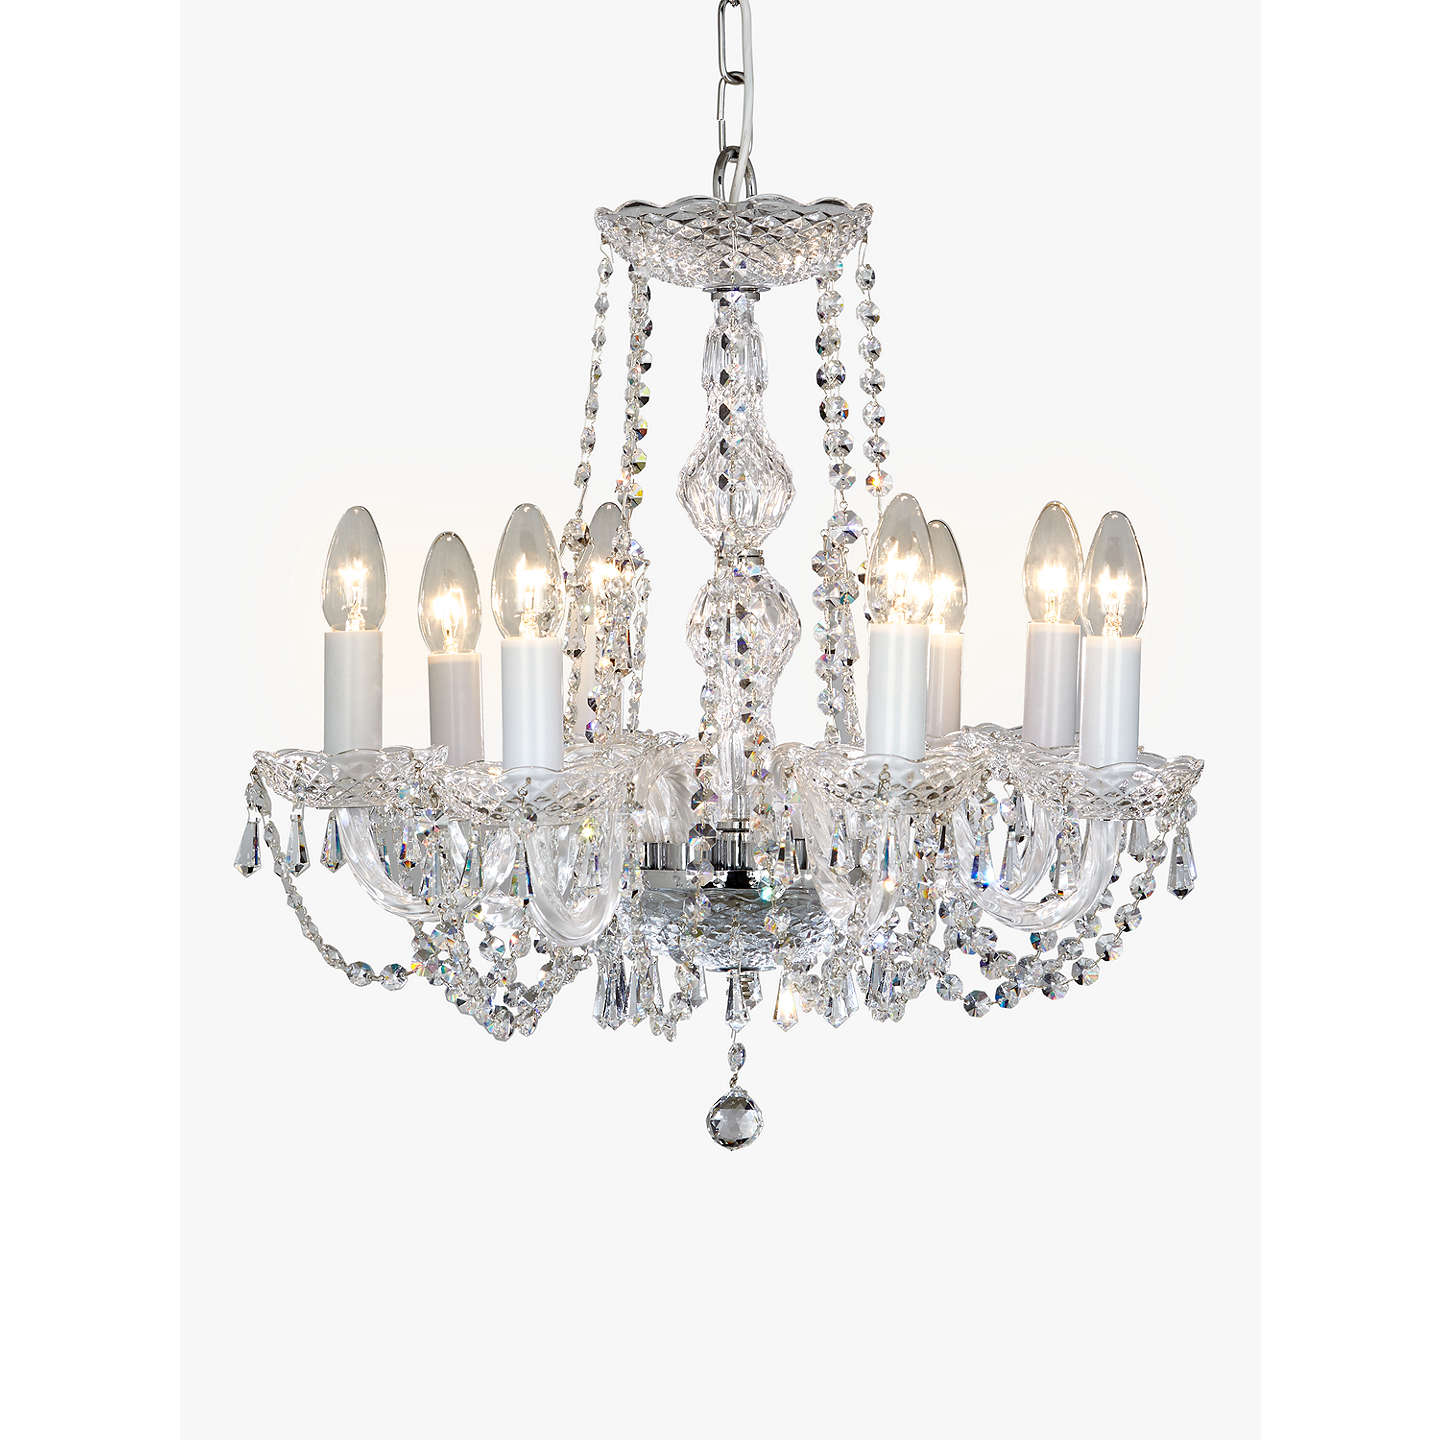 Impex modra chandelier ceiling light 8 light crystal clear at john buyimpex modra chandelier ceiling light 8 light crystal clear online at johnlewis mozeypictures Choice Image